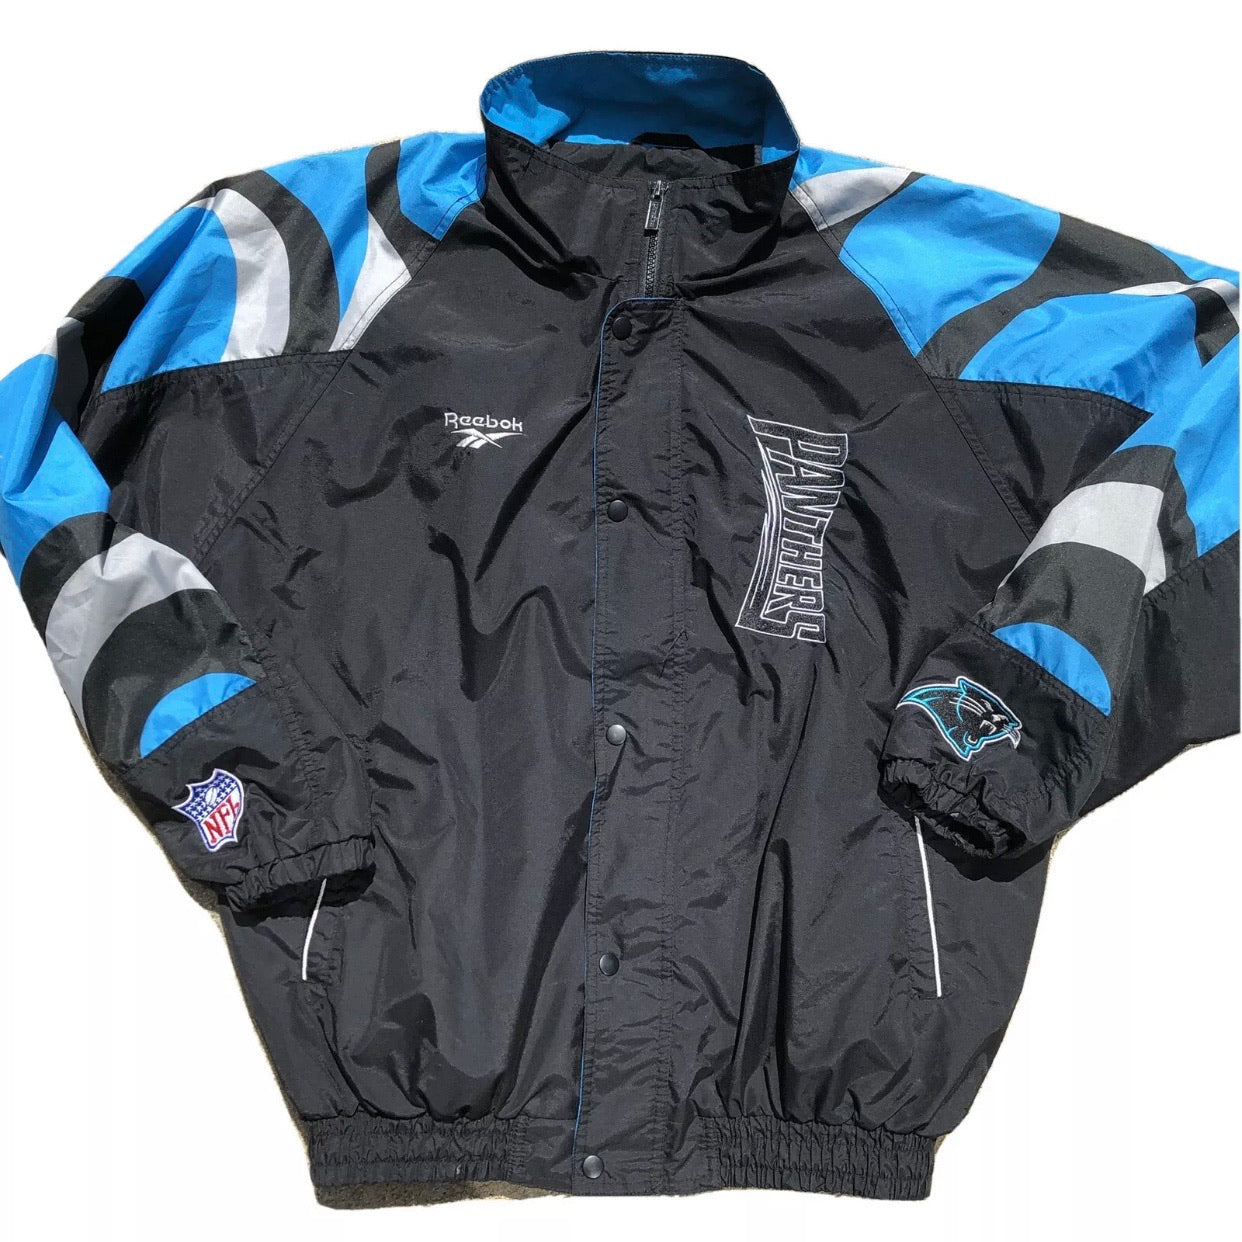 Vintage Reebok NFL Carolina Panthers jacket